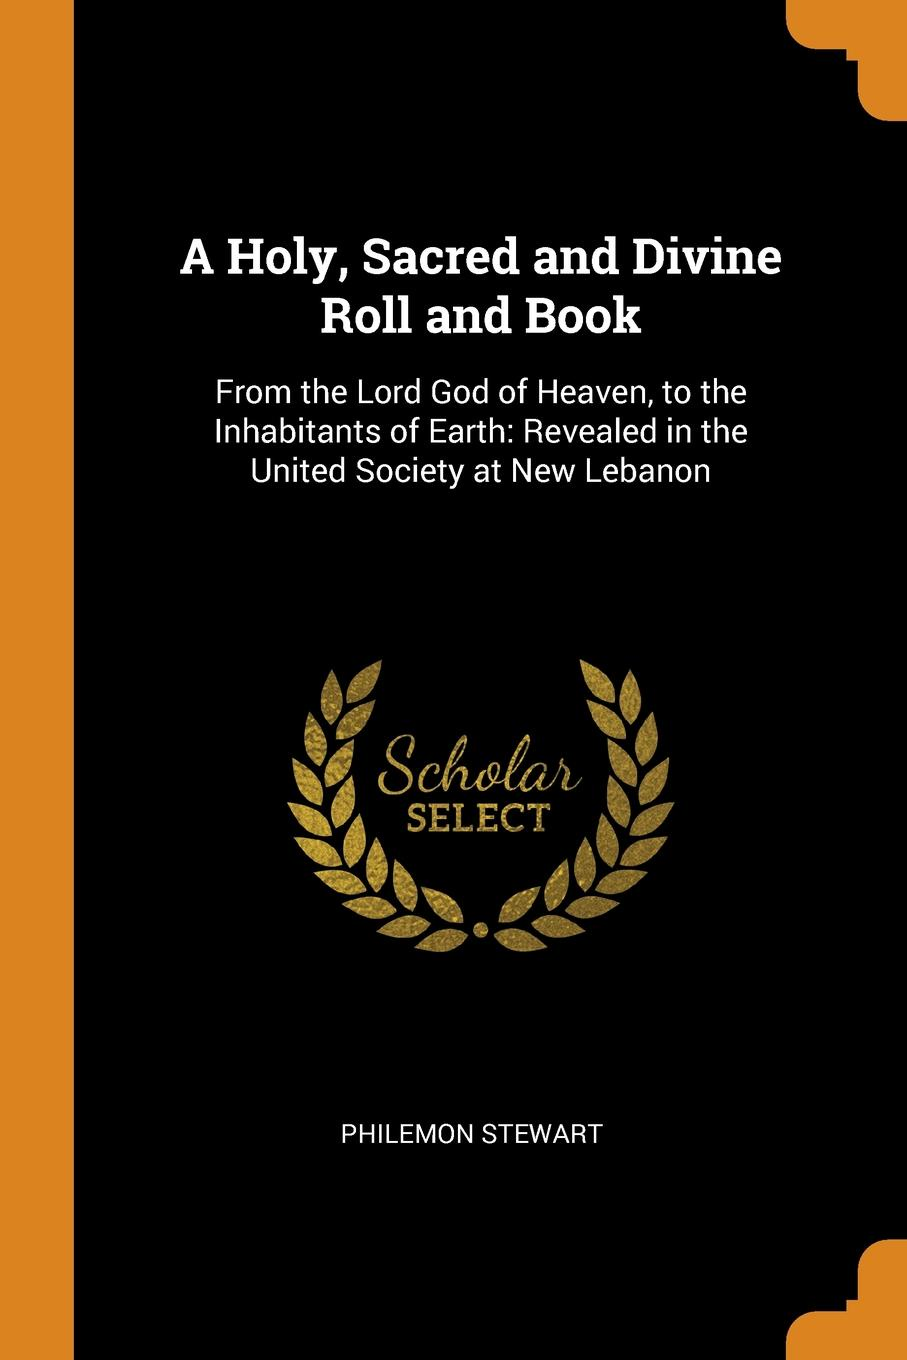 Philemon Stewart. A Holy, Sacred and Divine Roll and Book. From the Lord God of Heaven, to the Inhabitants of Earth: Revealed in the United Society at New Lebanon